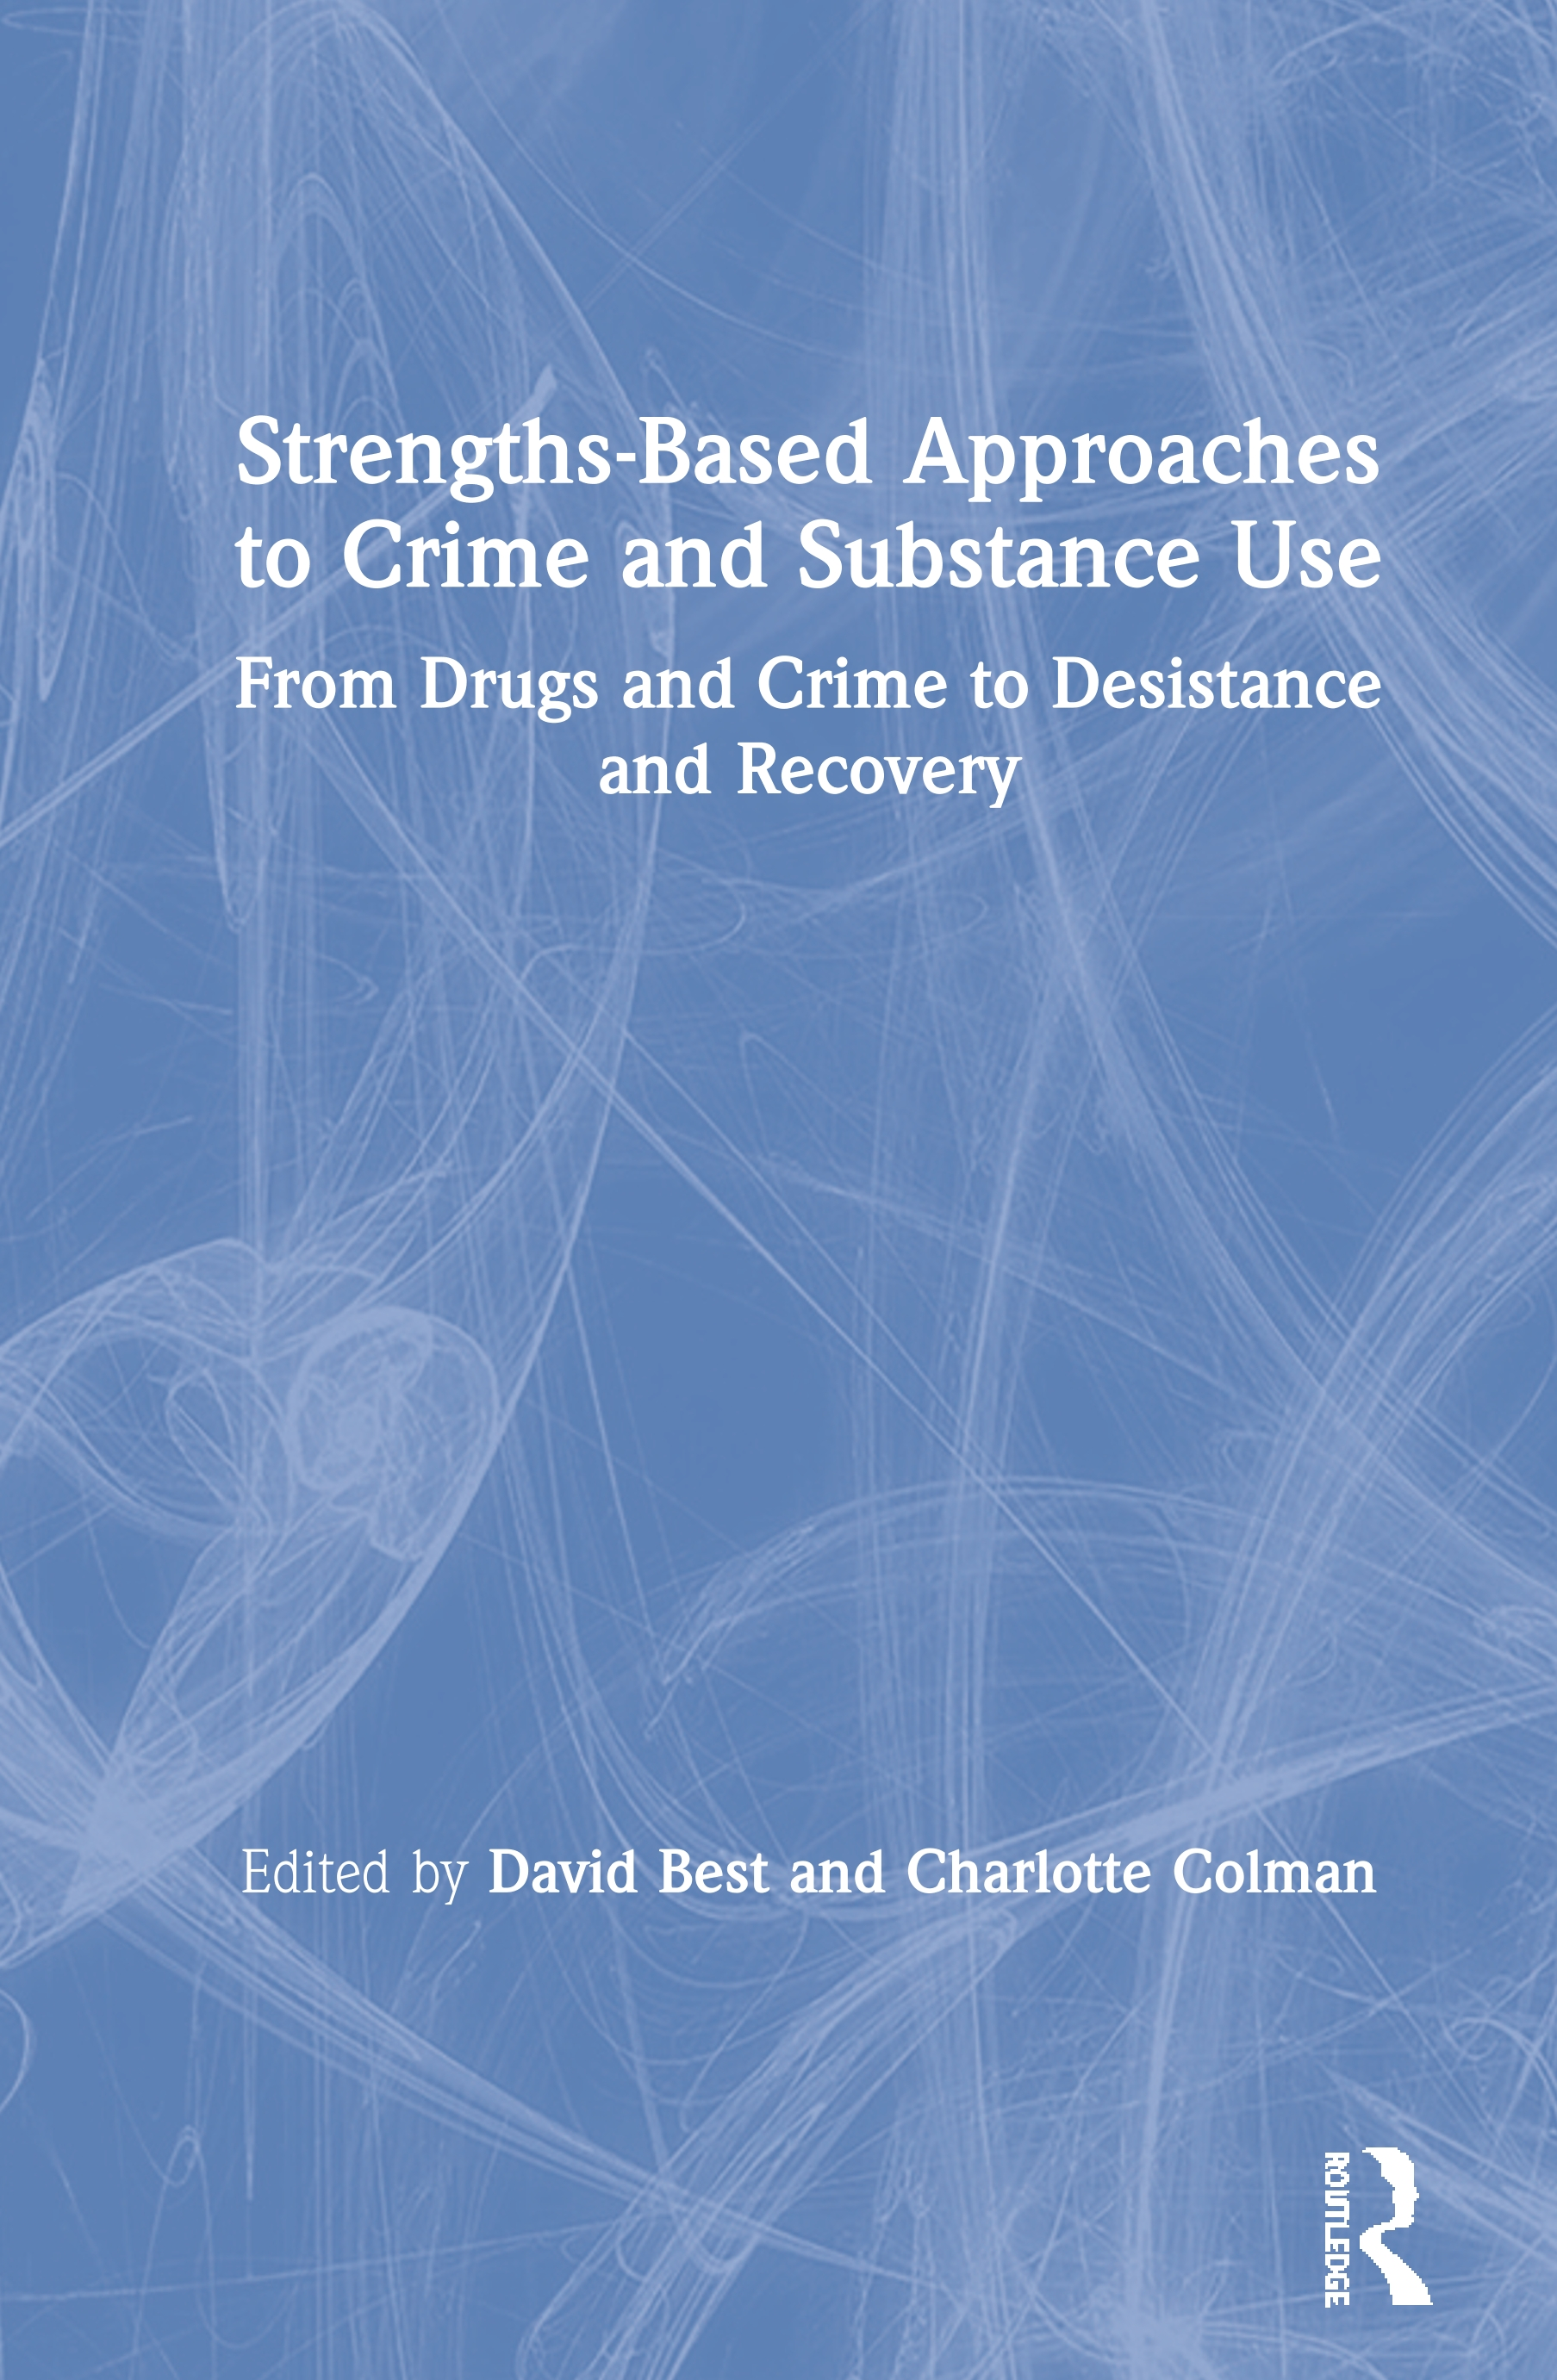 Strengths-Based Approaches to Crime and Substance Use: From Drugs and Crime to Desistance and Recovery book cover